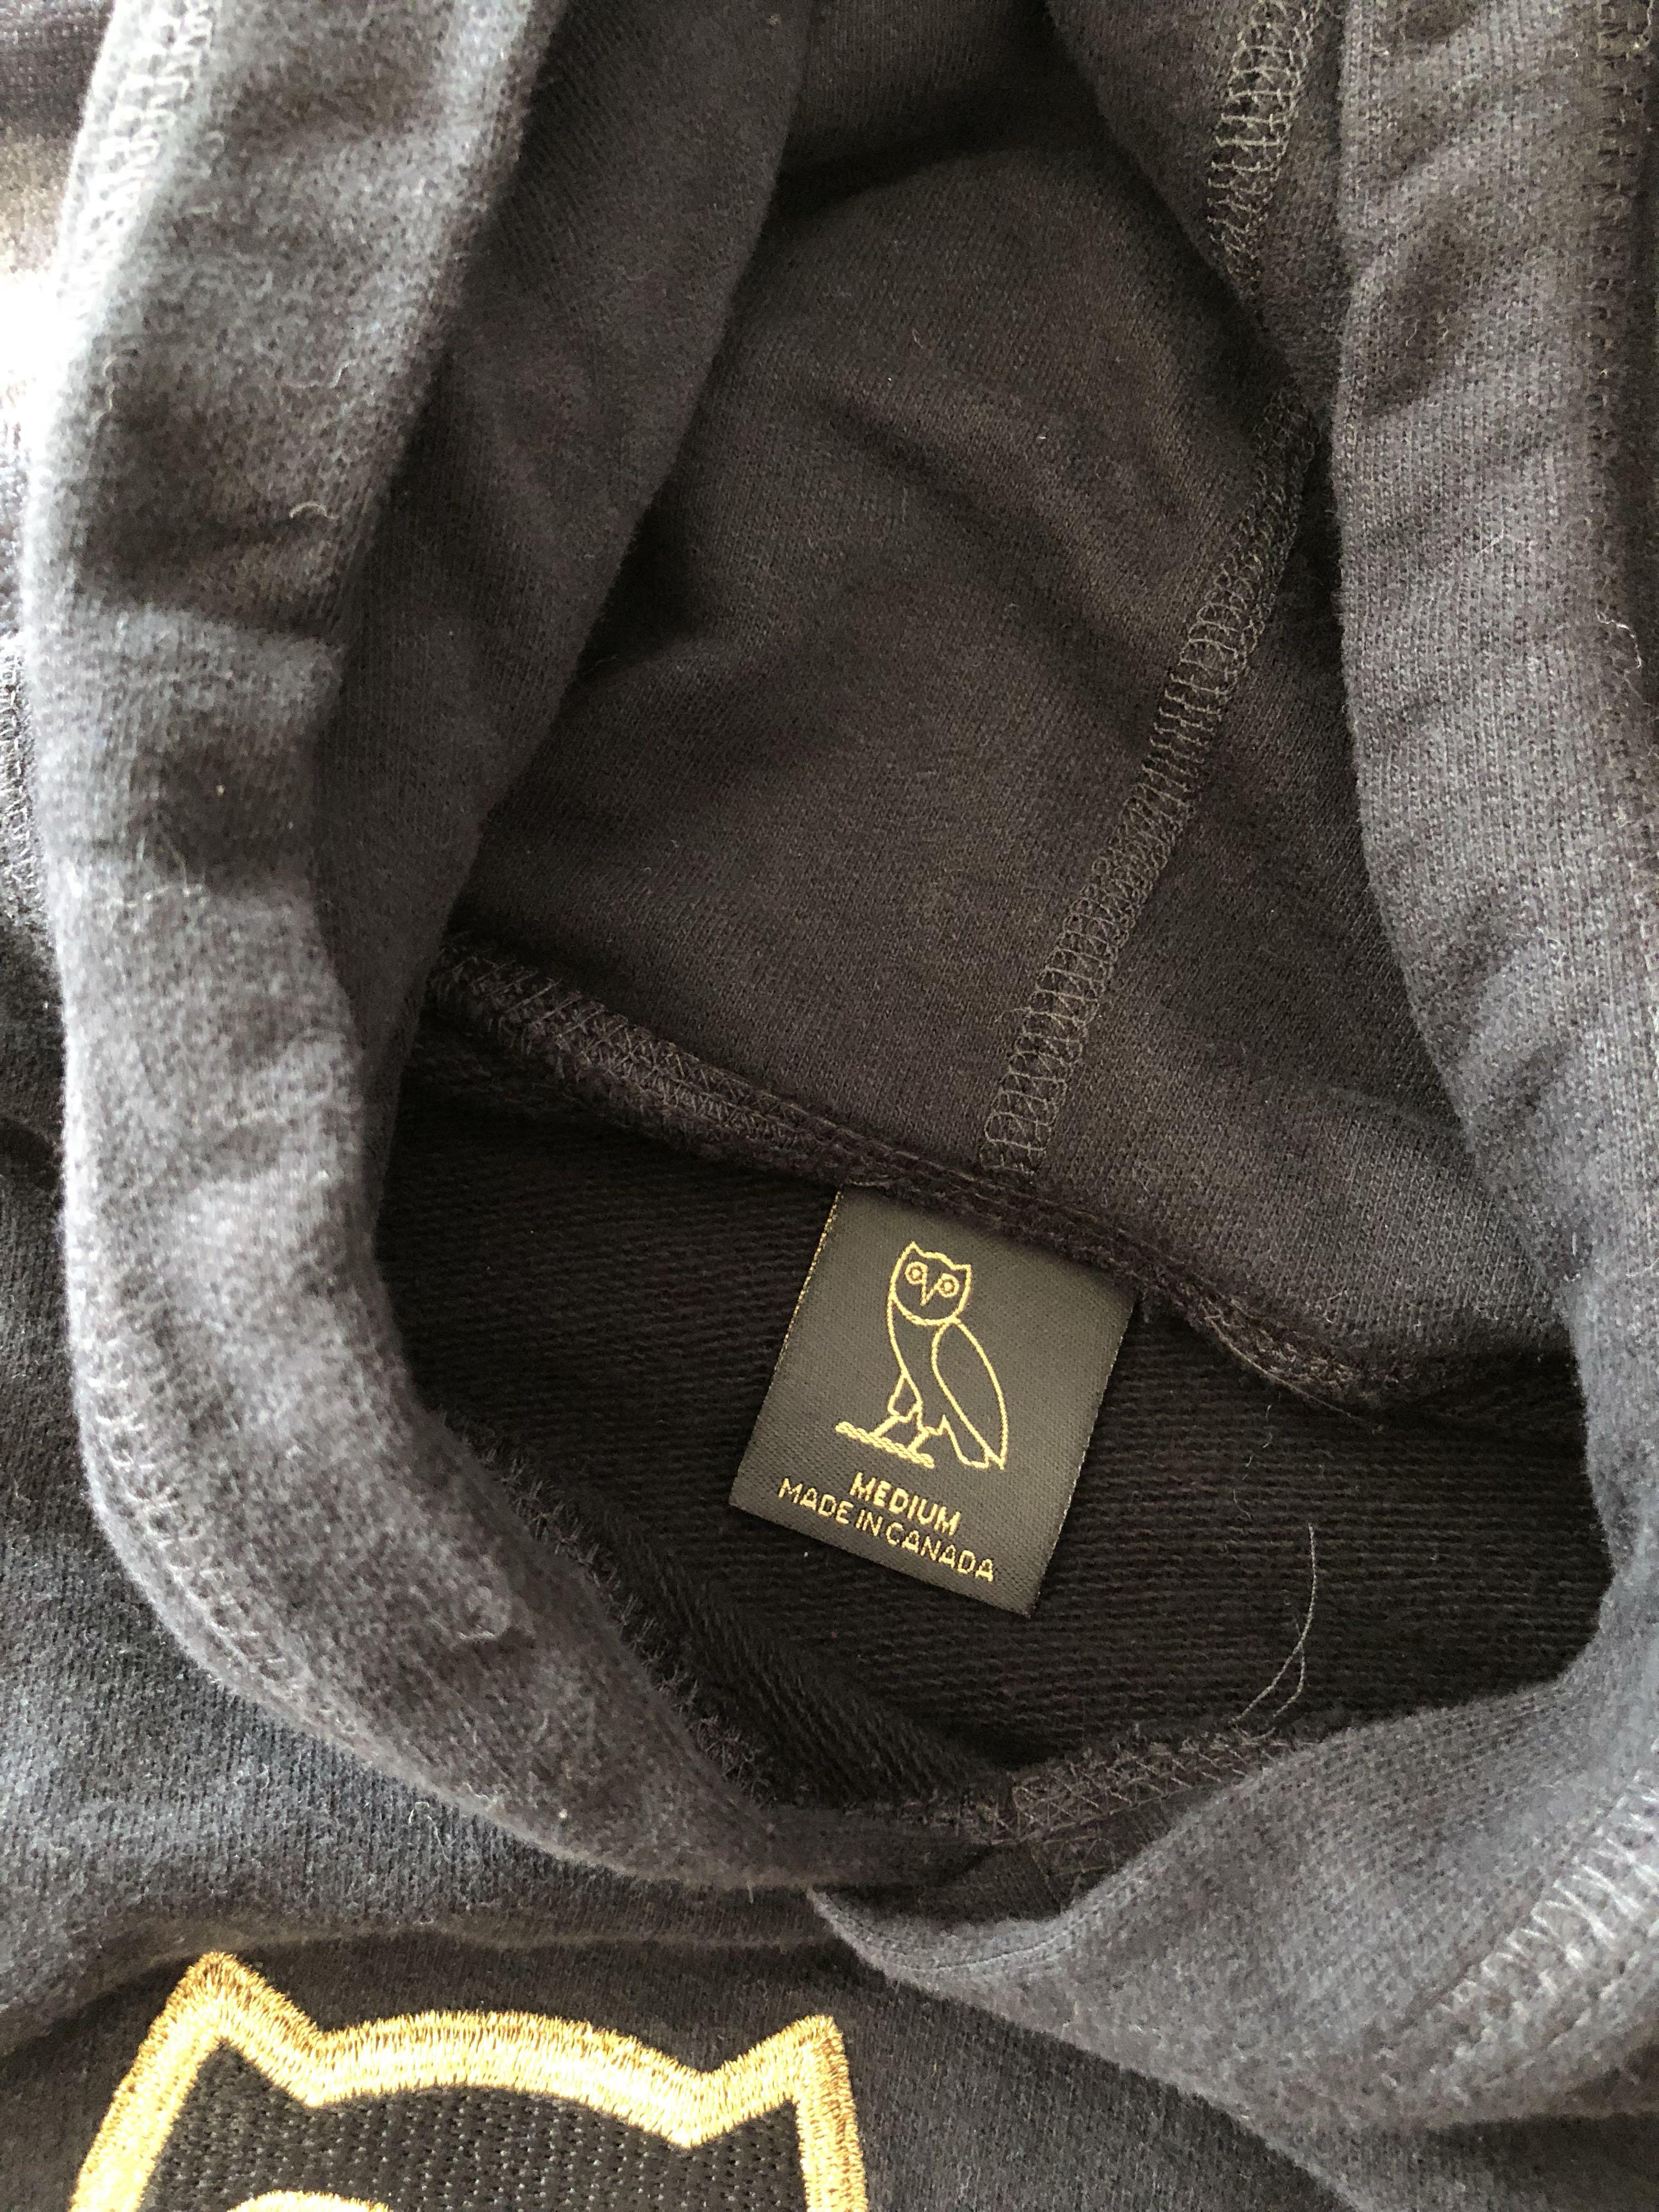 OVO Women's Cropped Hoodie- limited edition (size M)